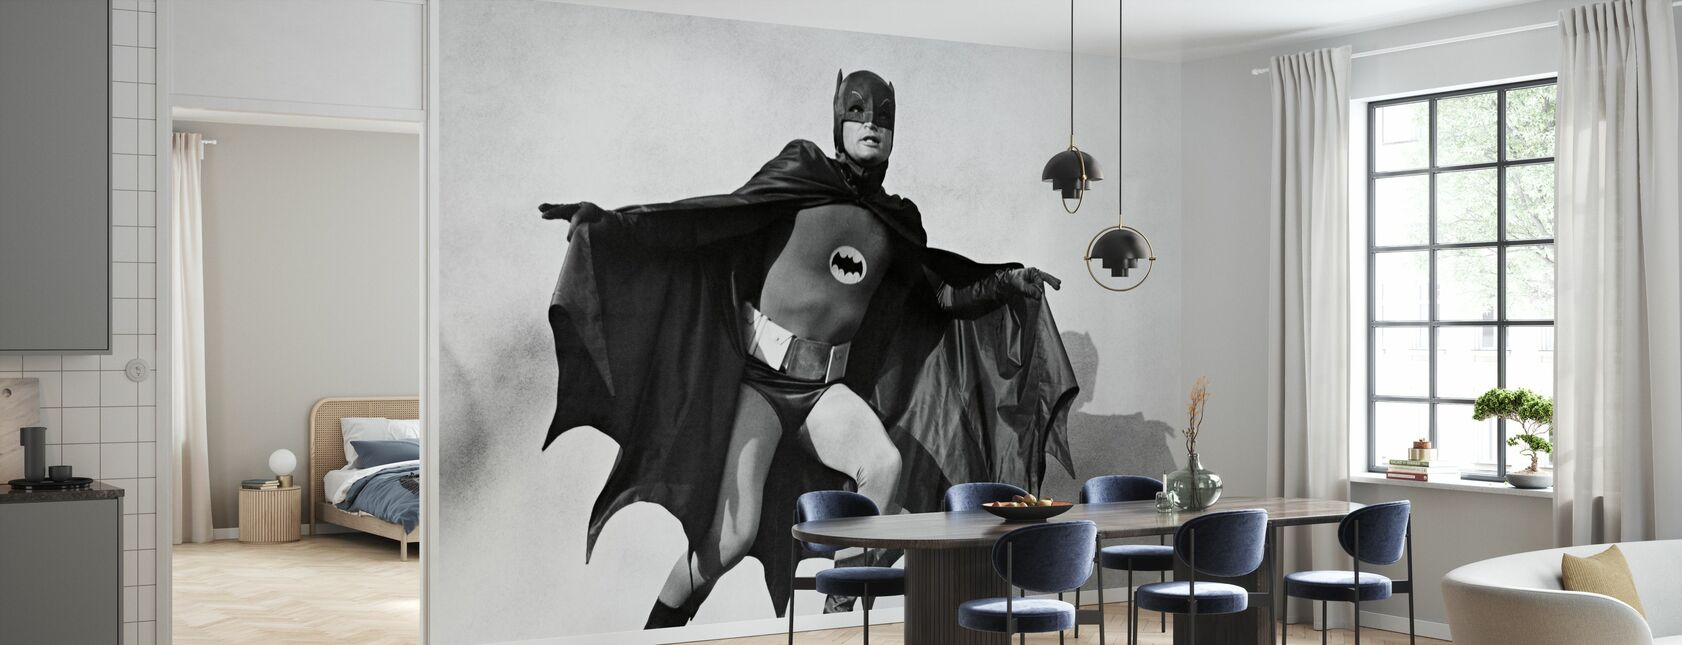 Batman - Adam West - Tapeta - Kuchnia